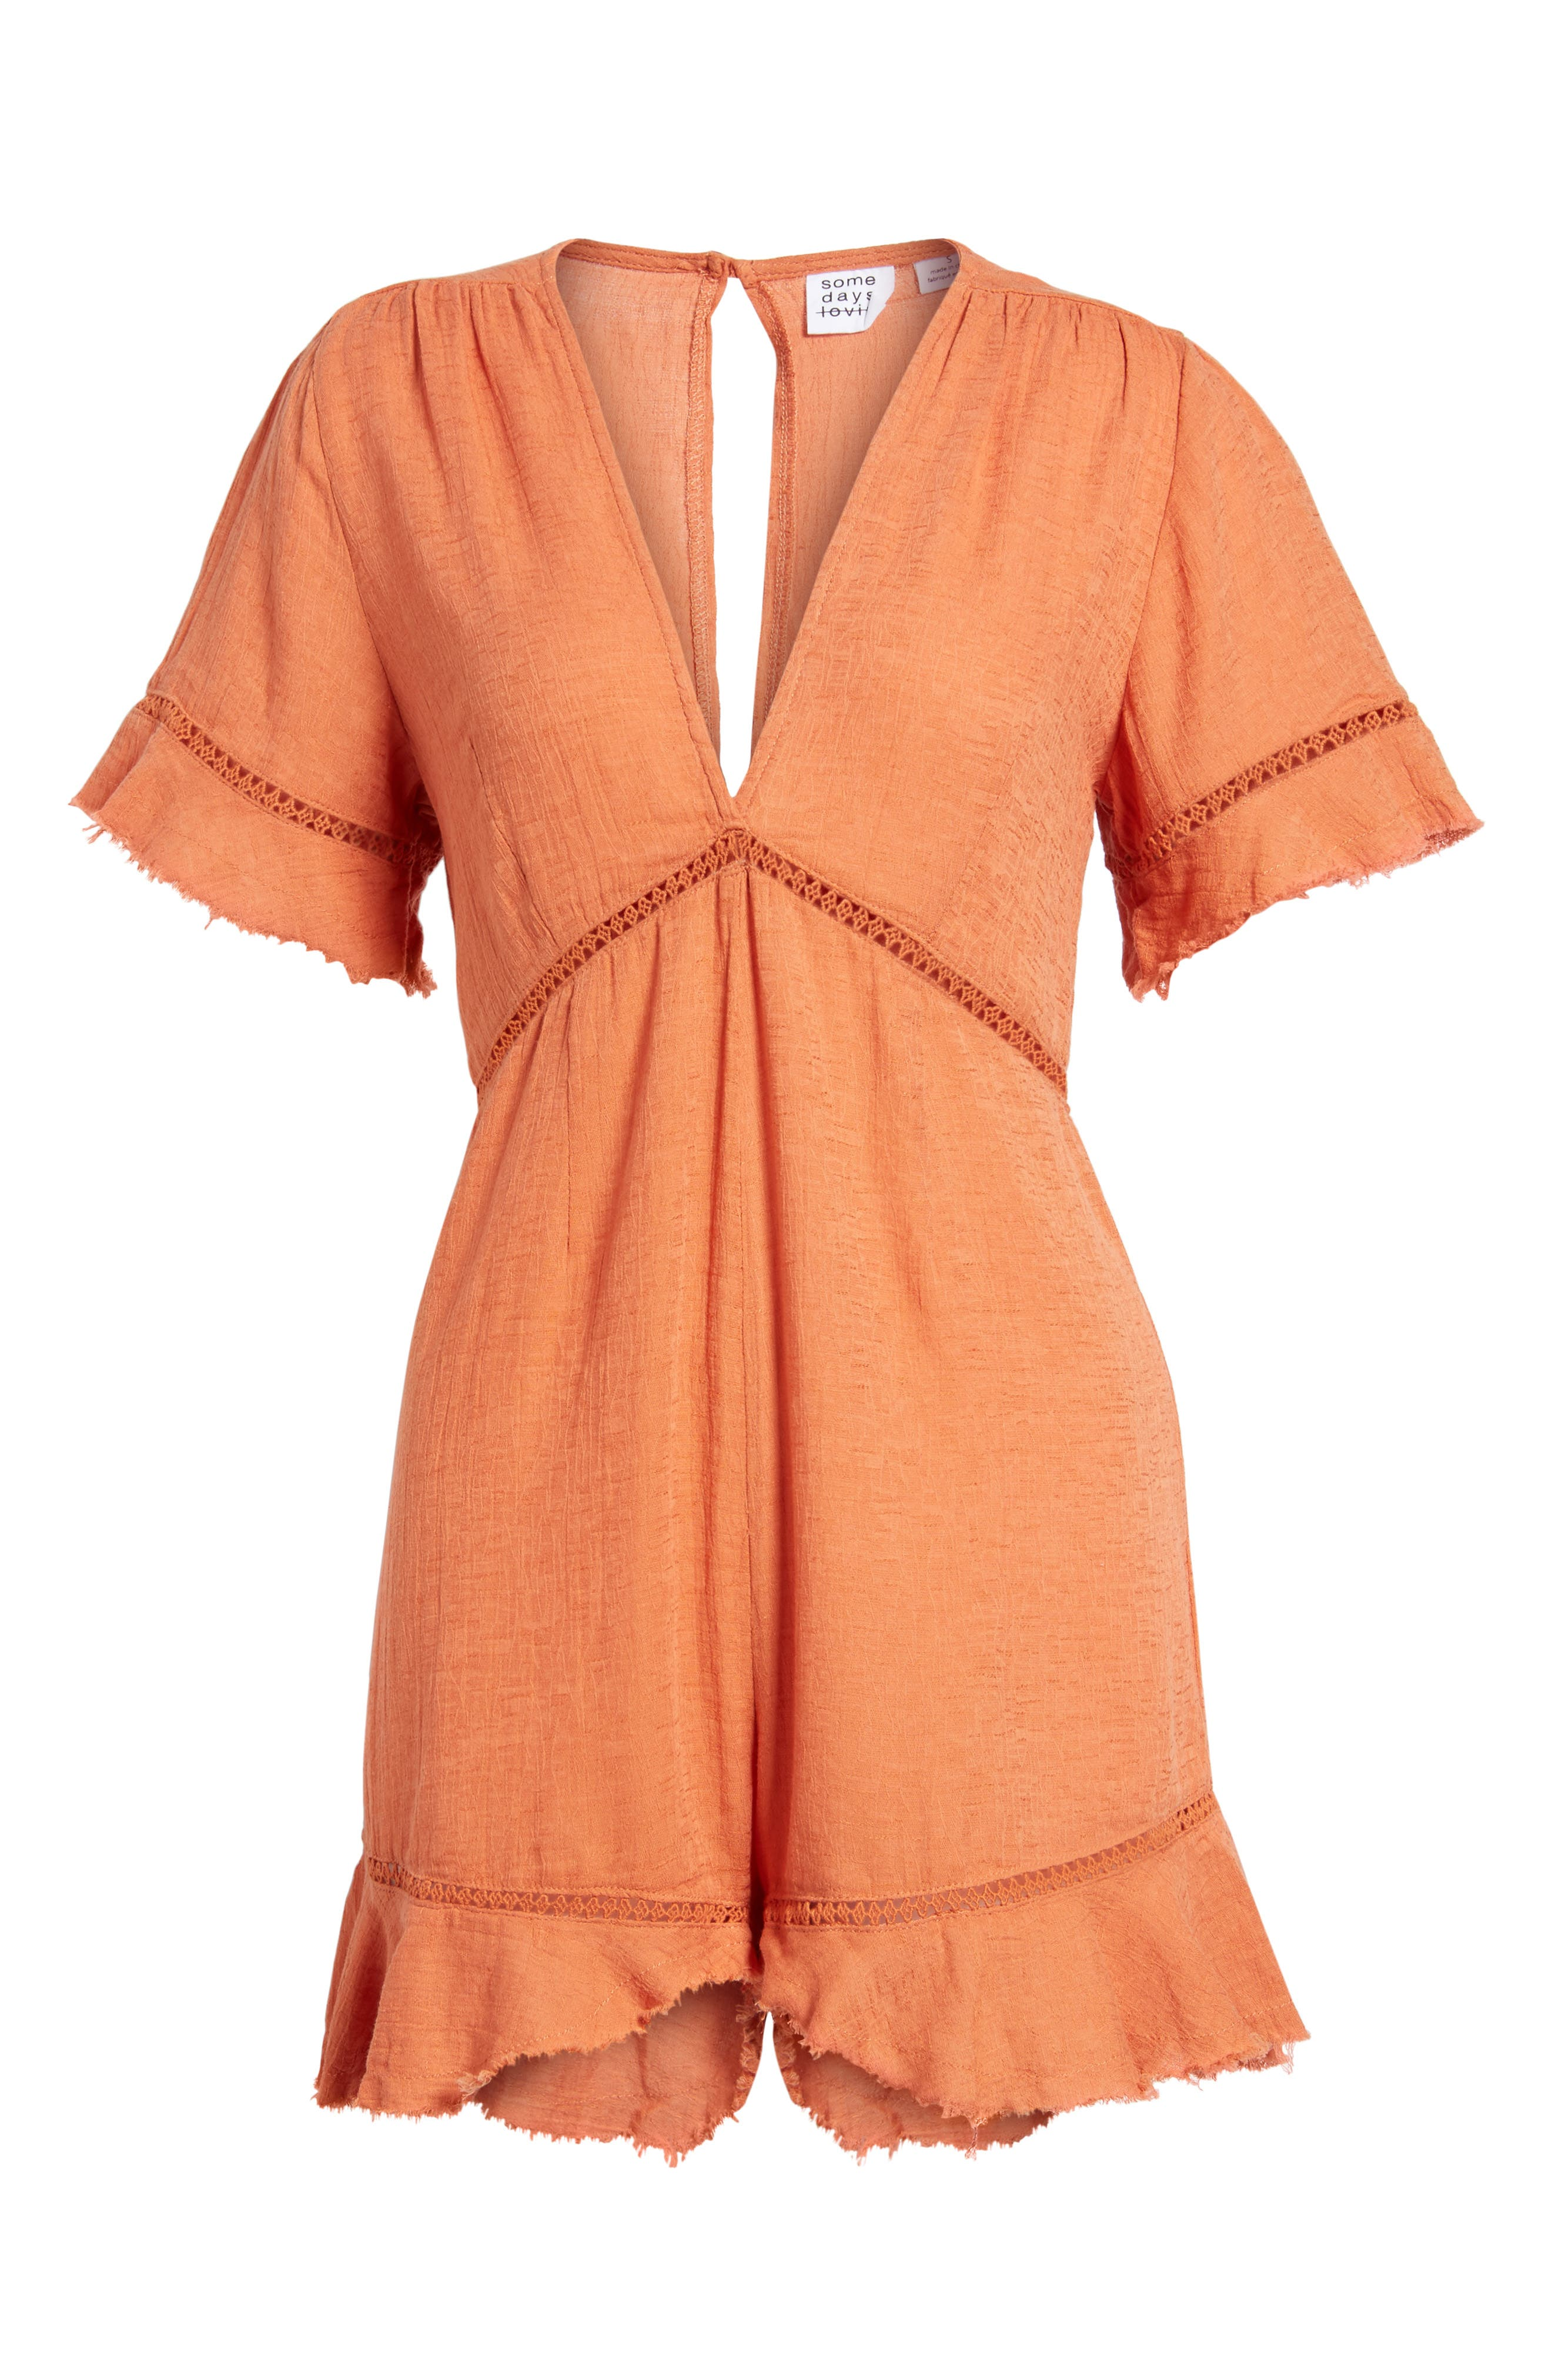 Highway to Highway Fray Edge Romper,                             Alternate thumbnail 6, color,                             950